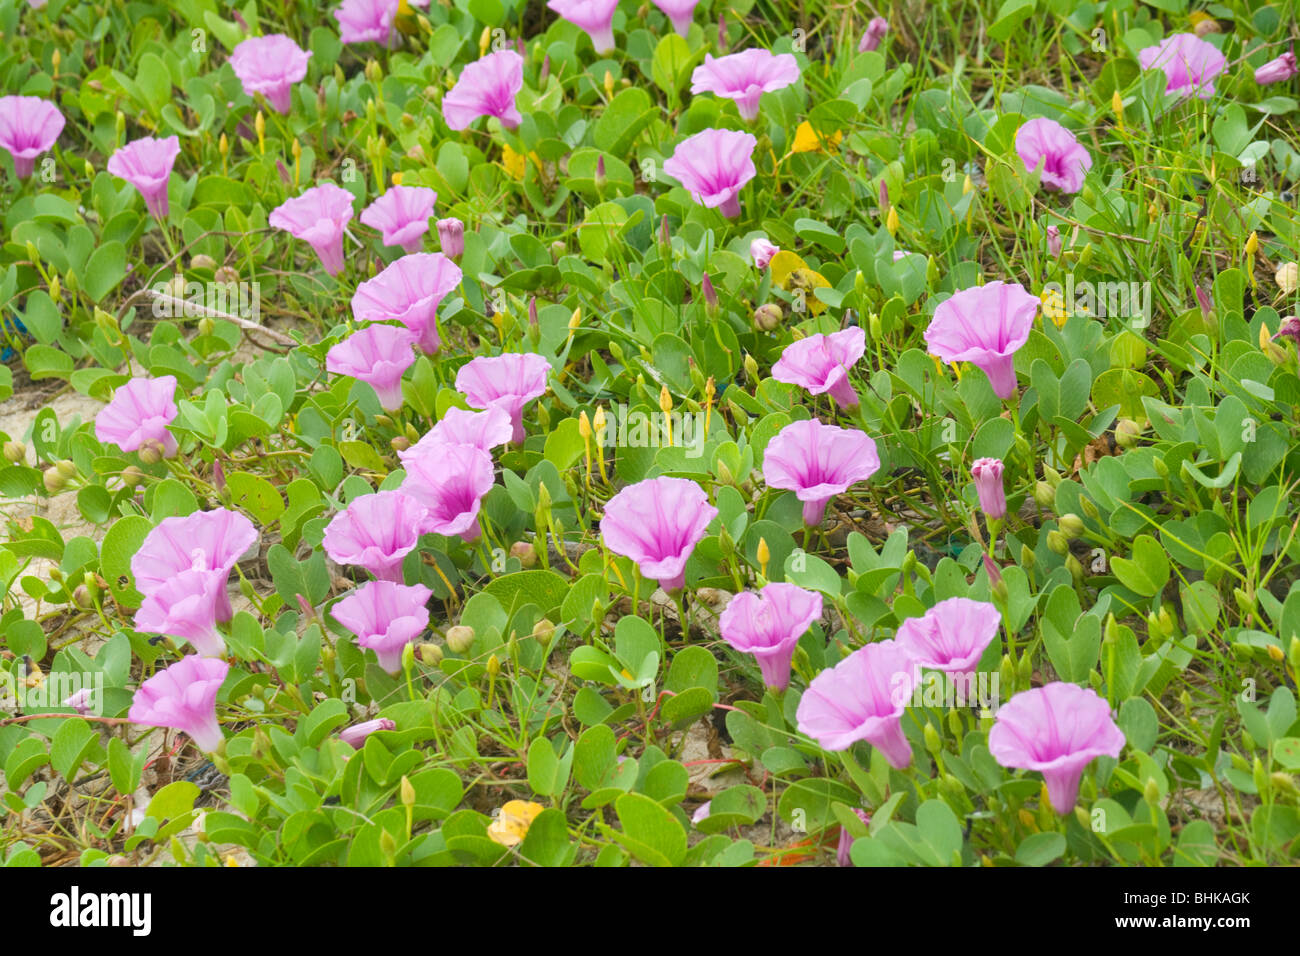 Ipomoea pes-caprae Beach morning glory a flower growing on asian beaches - Stock Image